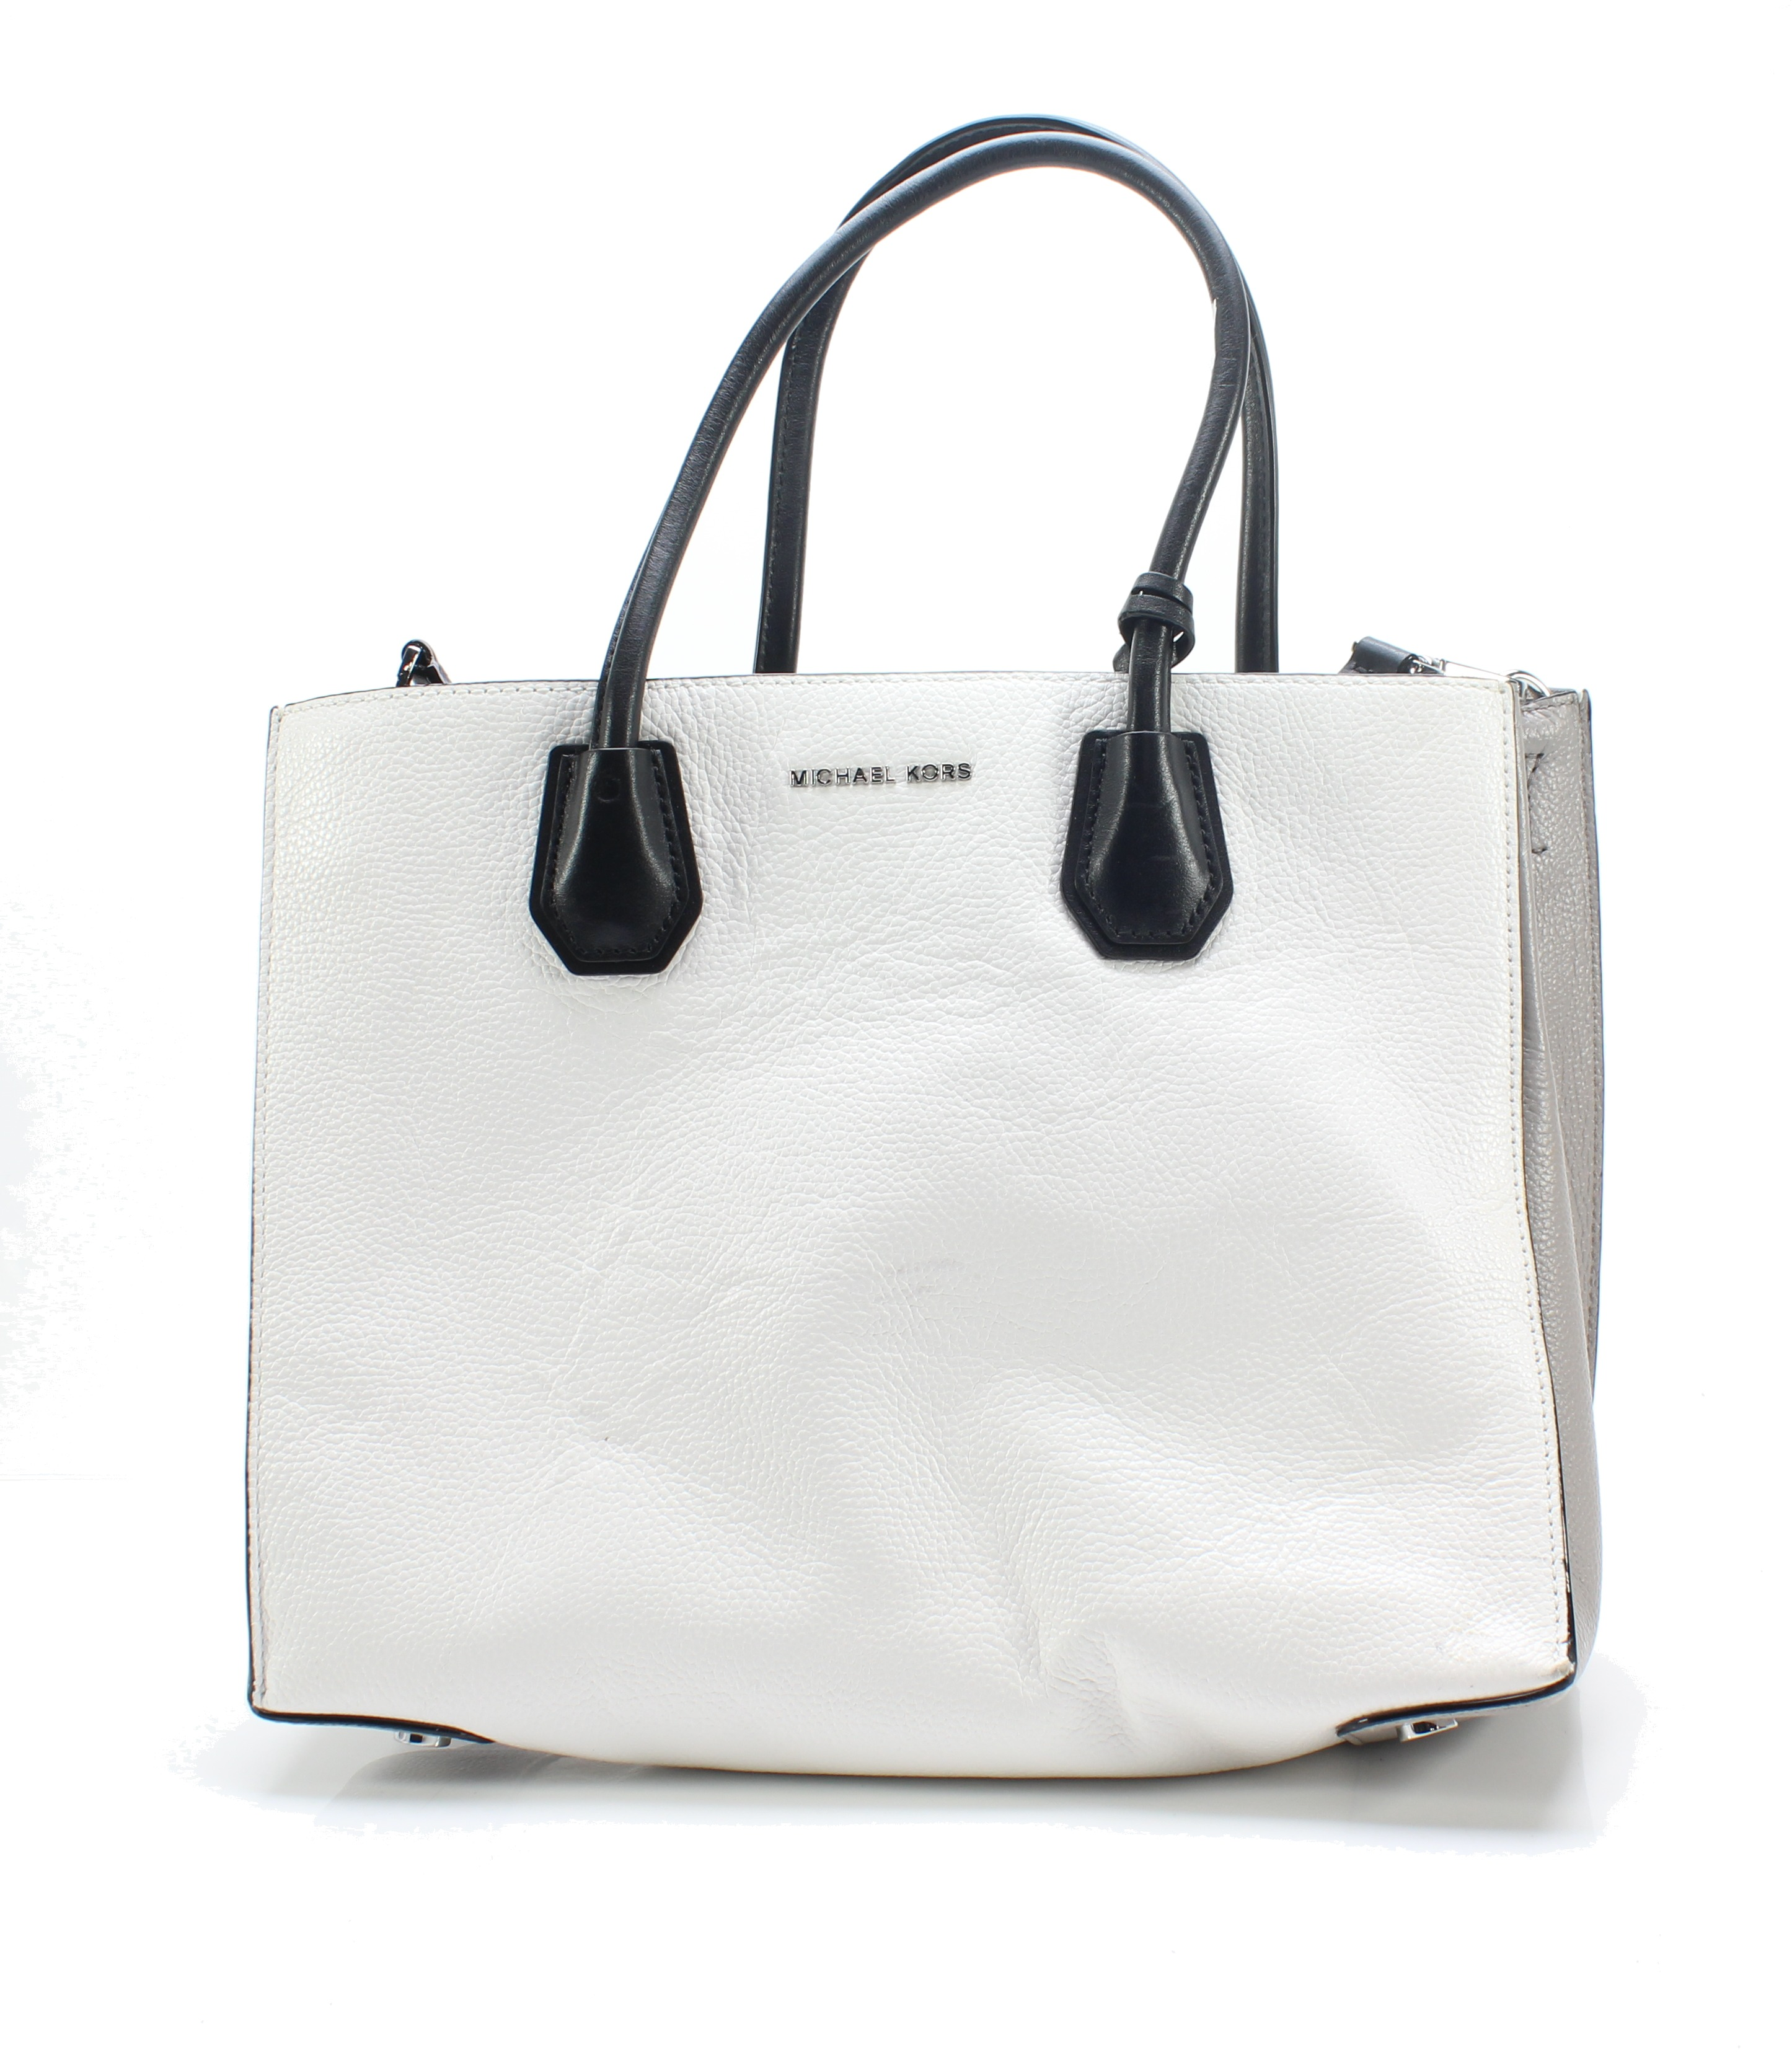 f0e5f58736f9 Details about Michael Kors NEW Optic White Silver Mercer Large Convertible  Tote Bag $298- #020